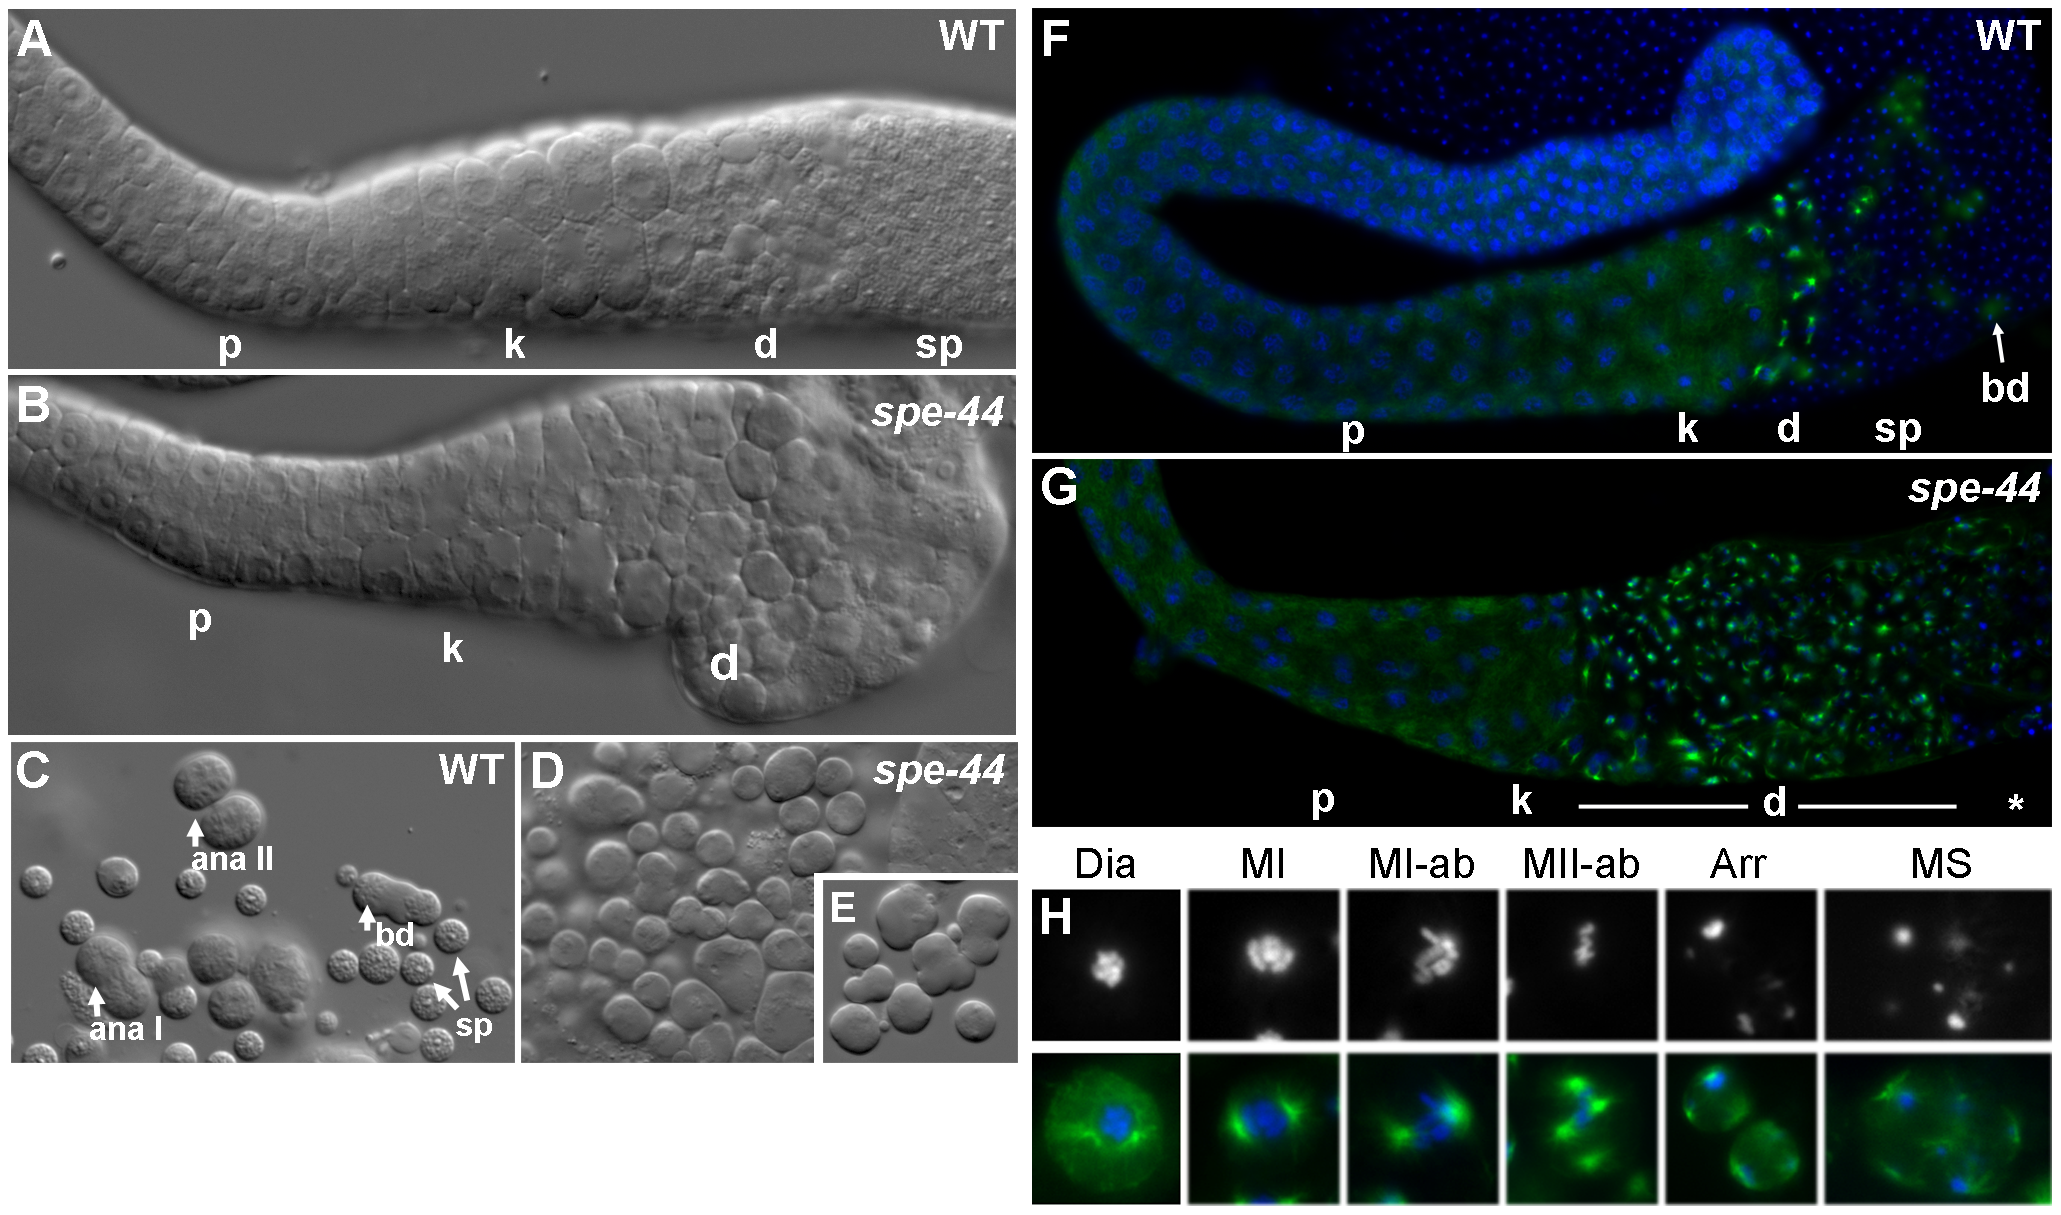 Spermatogenesis defects in <i>spe-44</i> males.